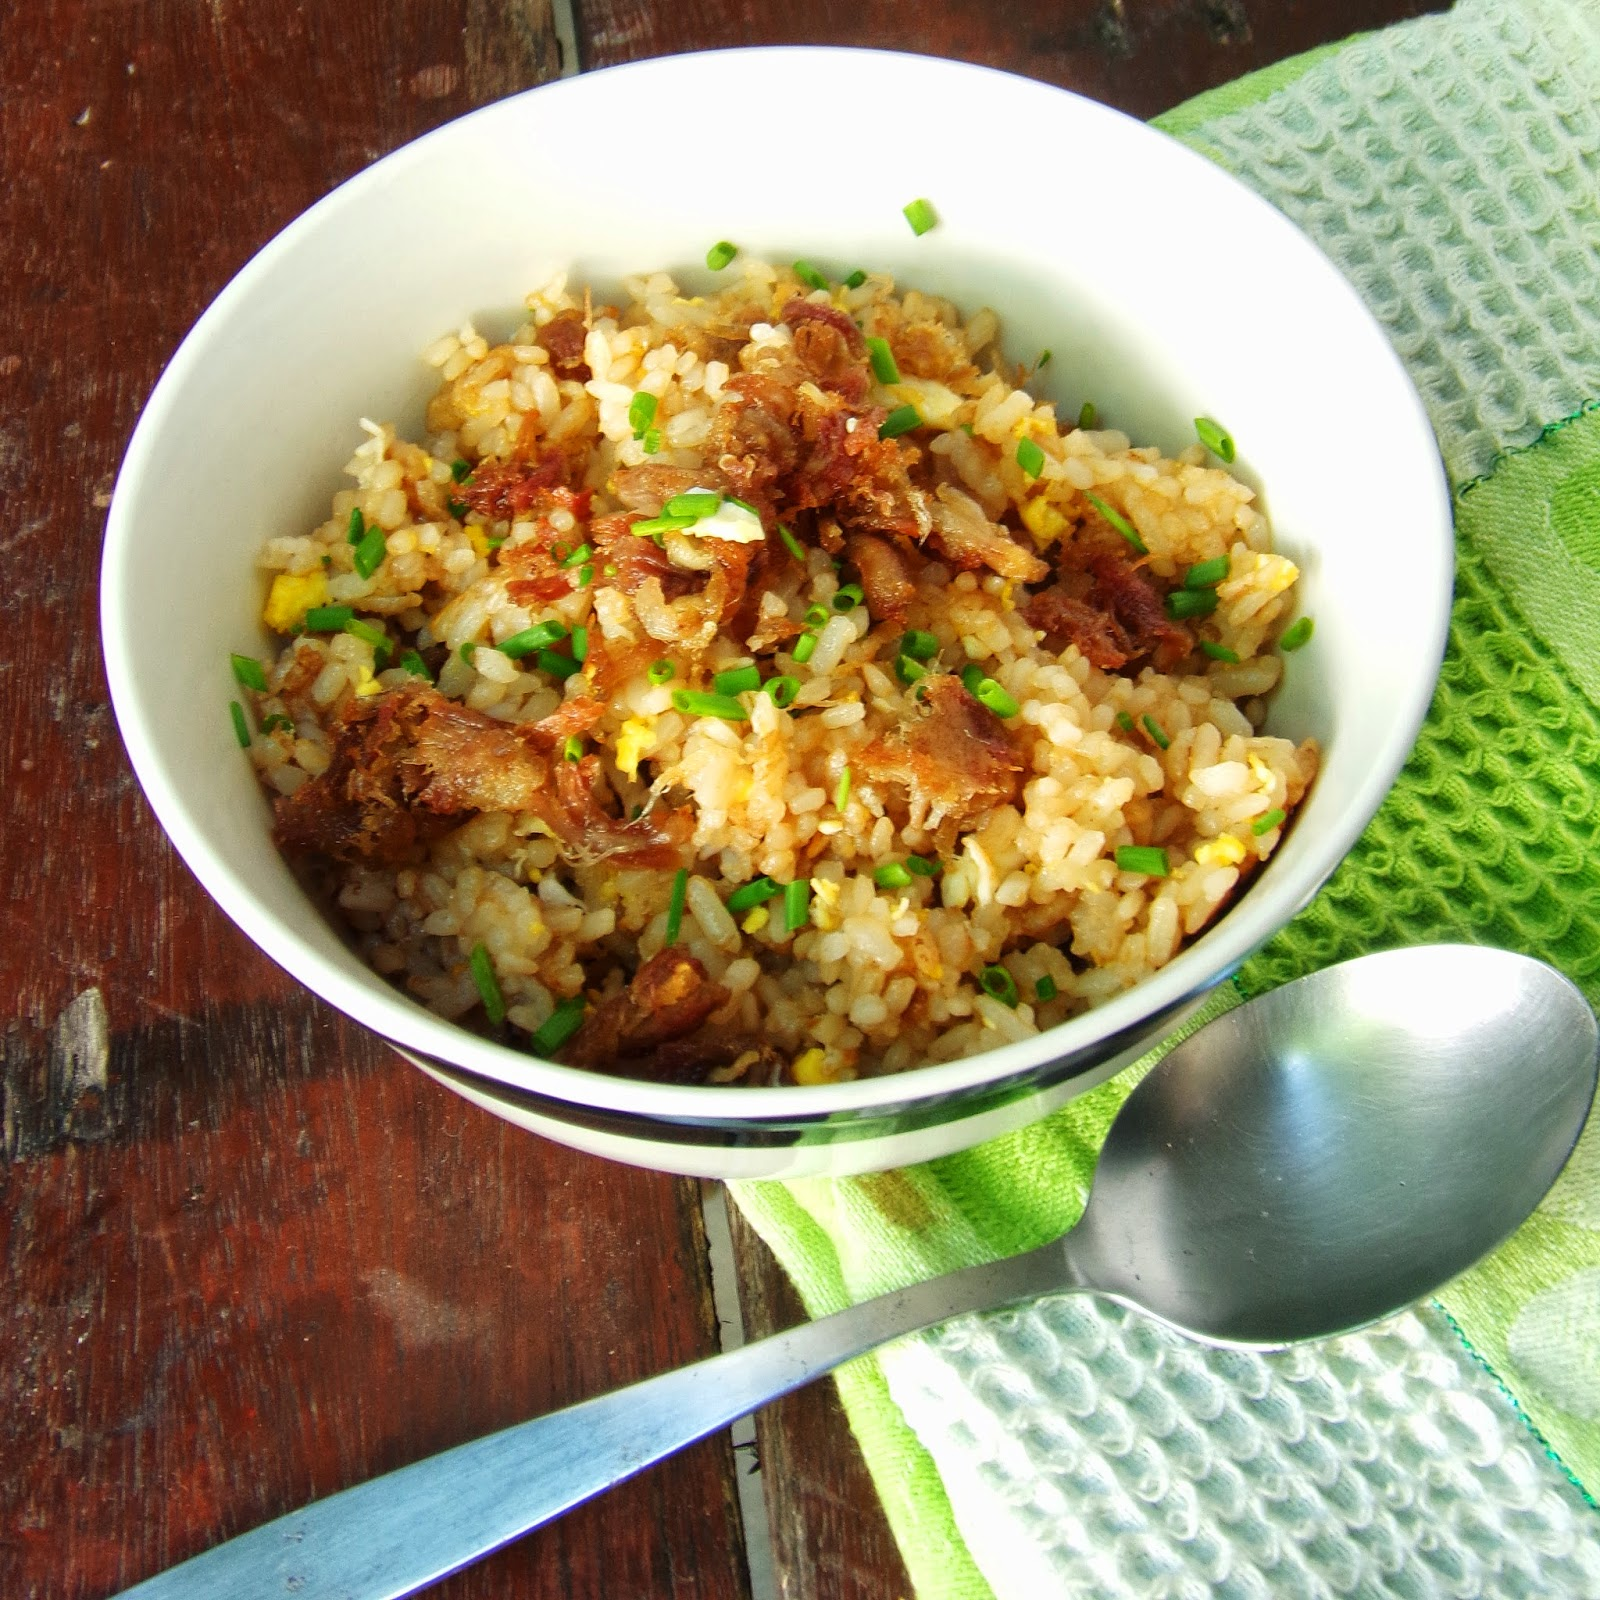 fried rice recipes, simple fried rice, recipe fried rice, pork fried rice